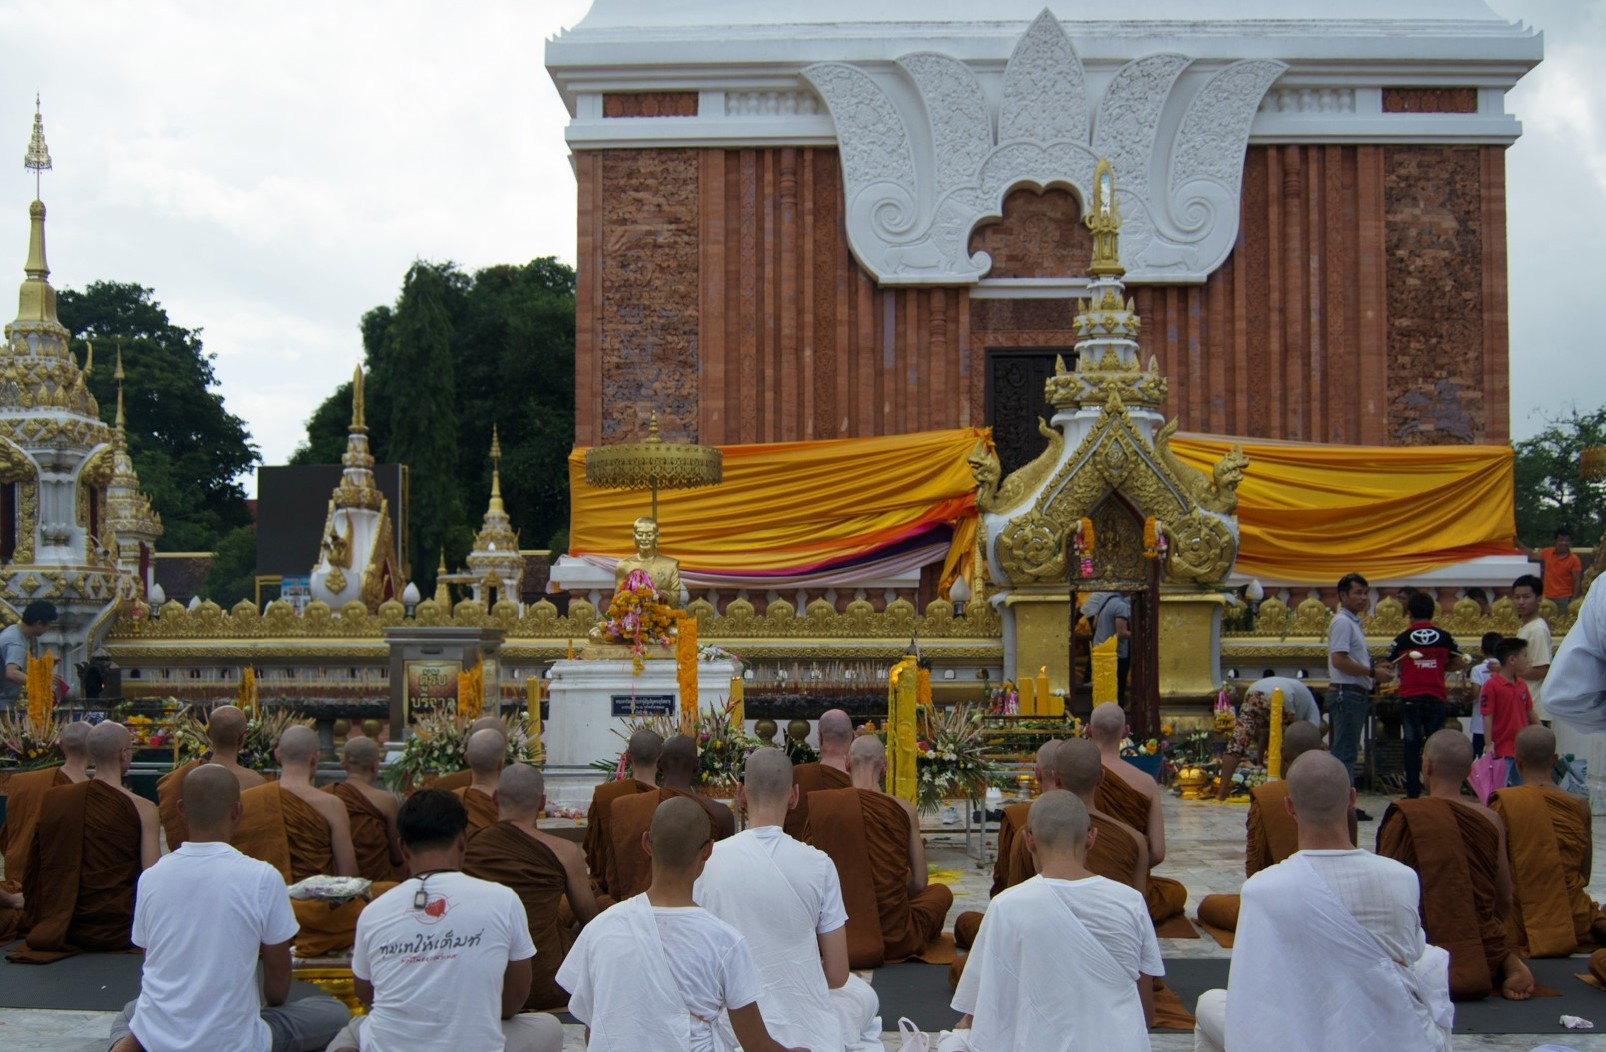 Paying Respects to Phra That Phanom